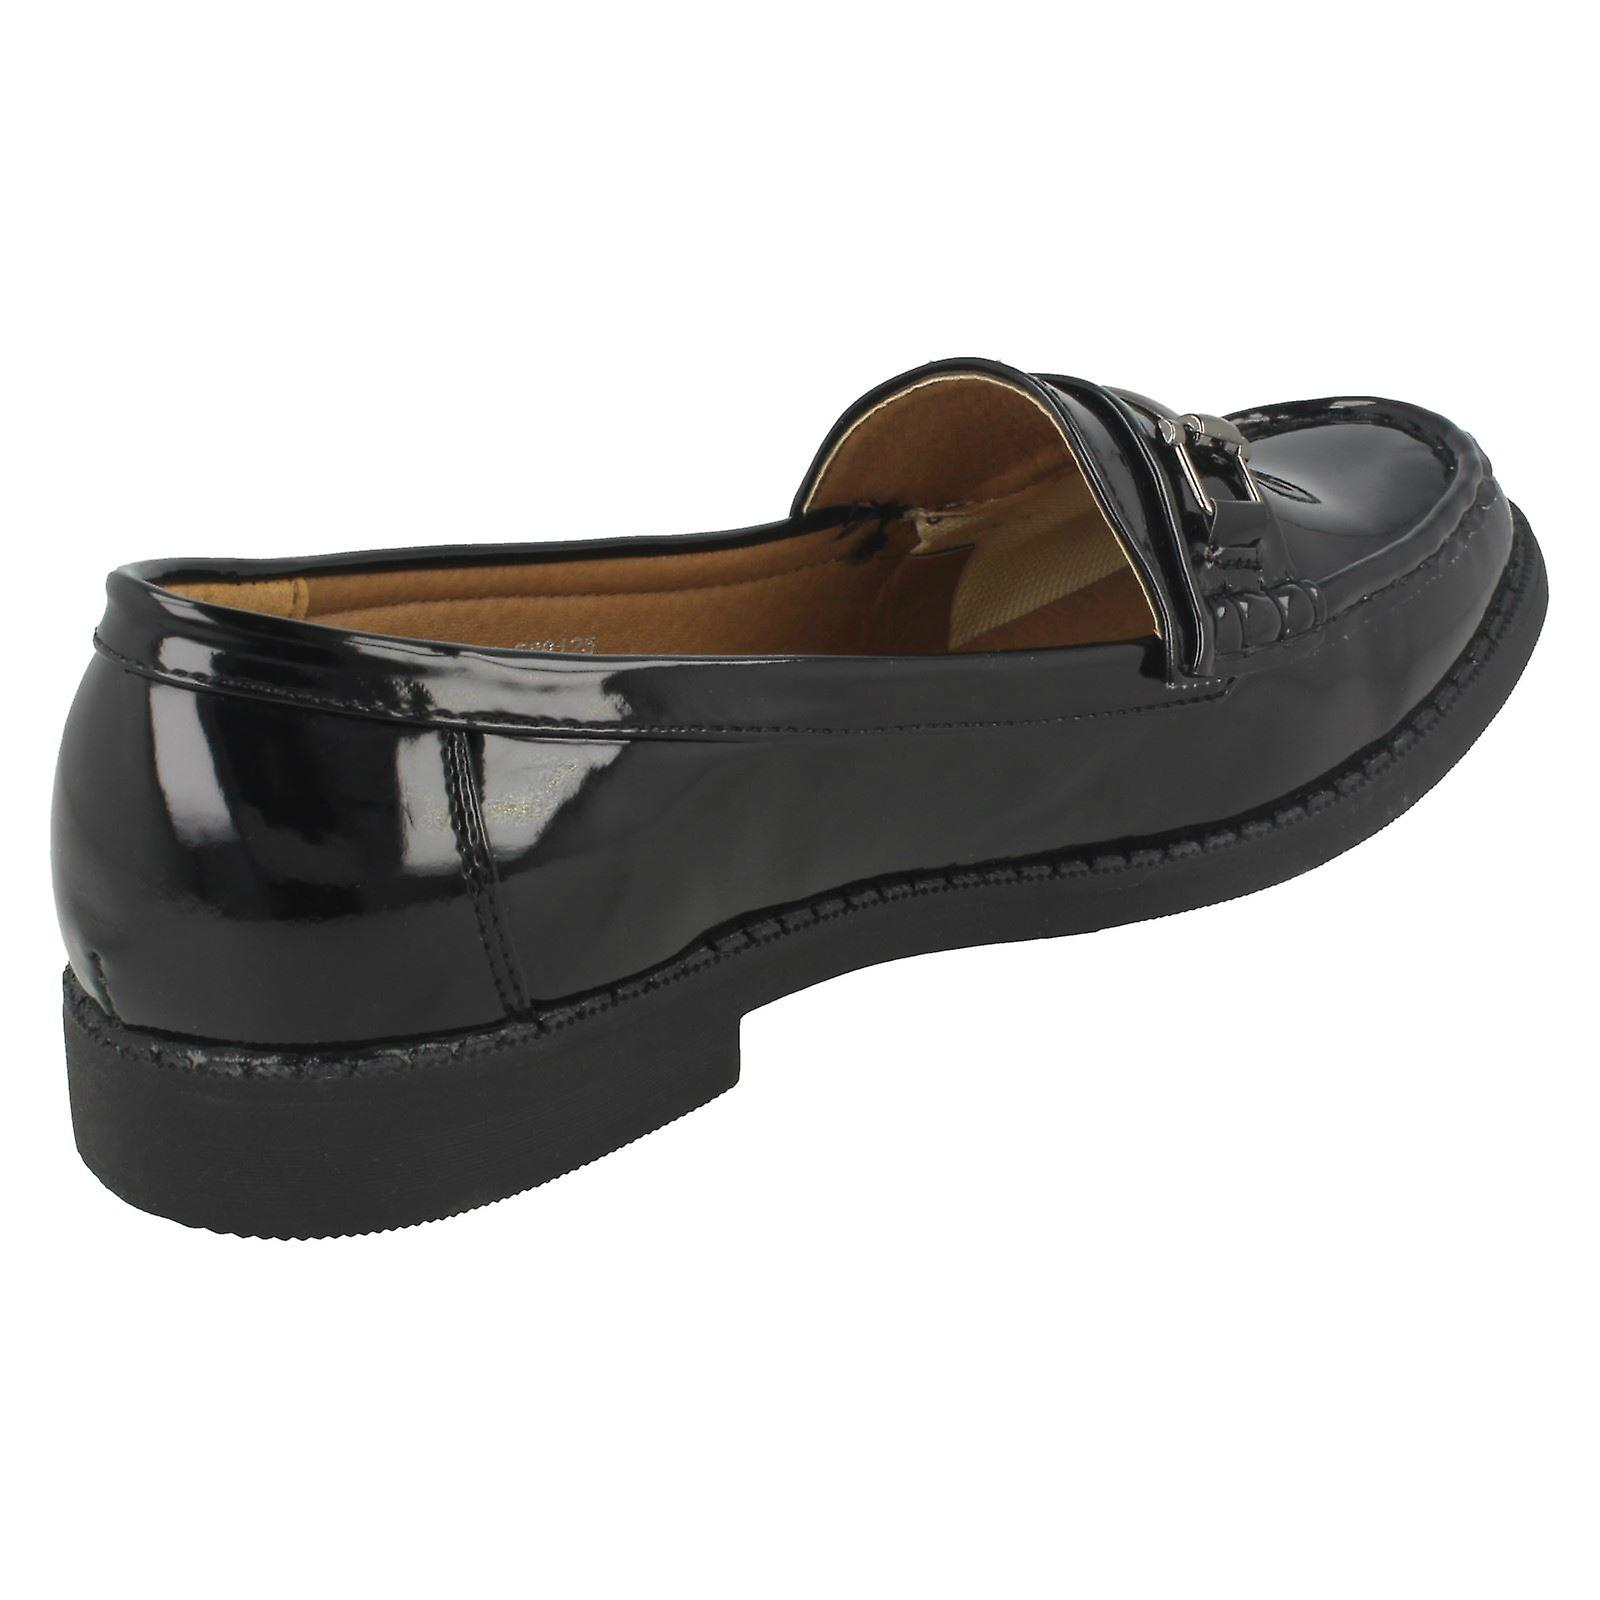 Shoes Loafer Ladies Ladies Spot On Spot On Loafer 6qww0YO4